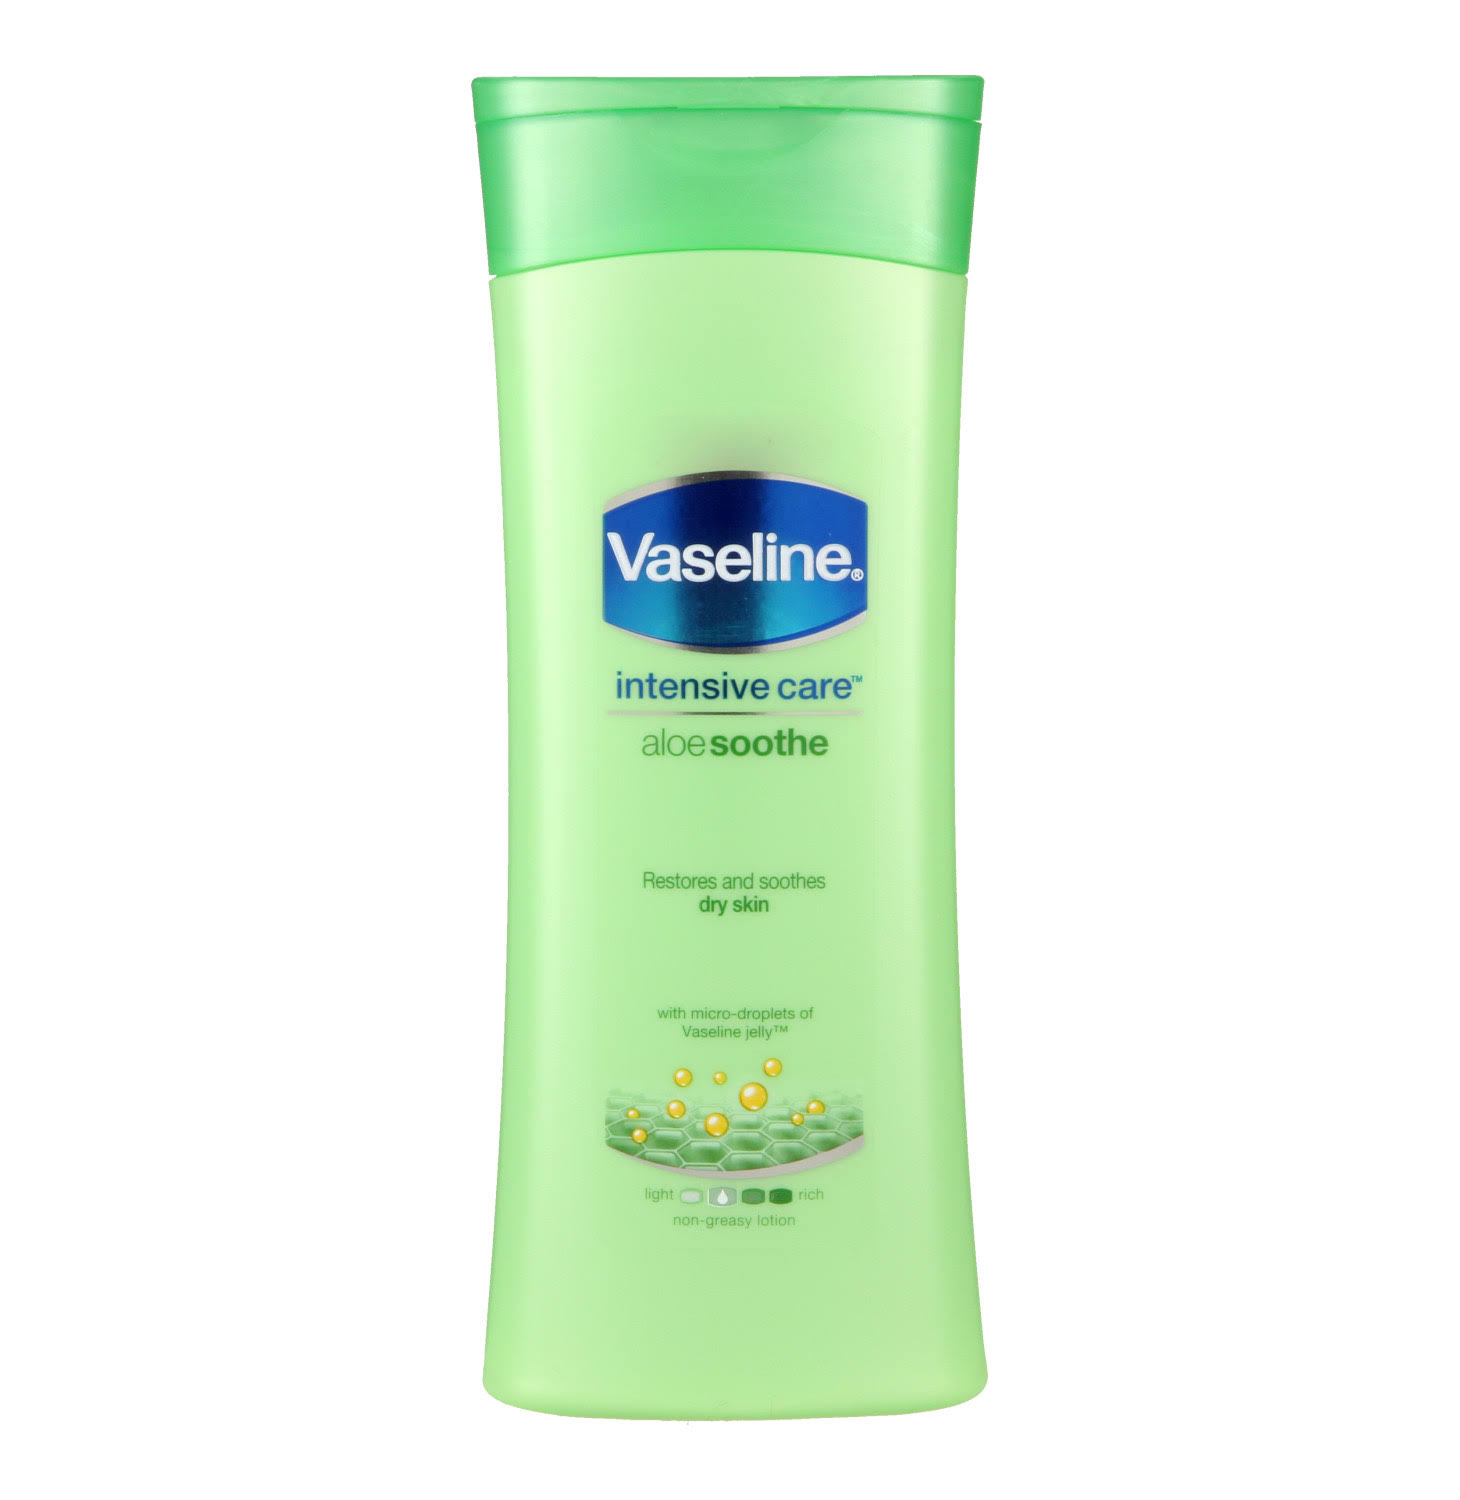 Vaseline Intensive Care Aloe Soothe Lotion - 400ml